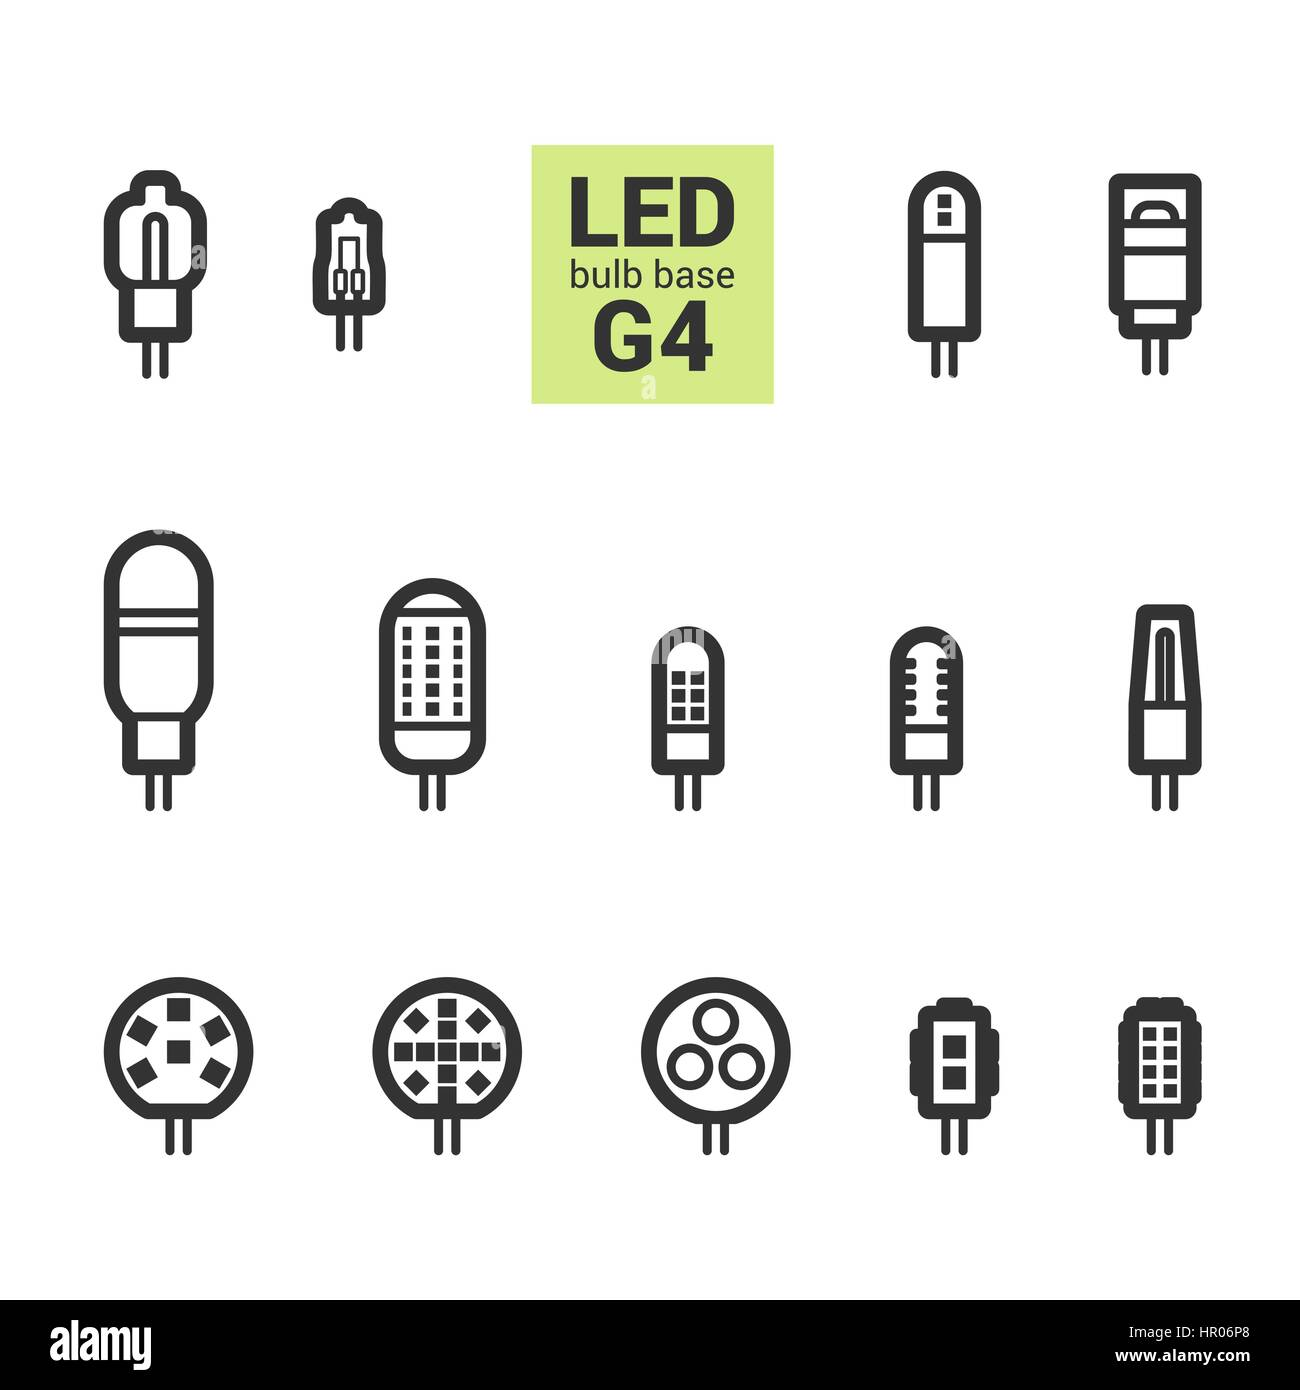 Led light bulbs with g4 base vector outline icon set on white led light bulbs with g4 base vector outline icon set on white background biocorpaavc Images